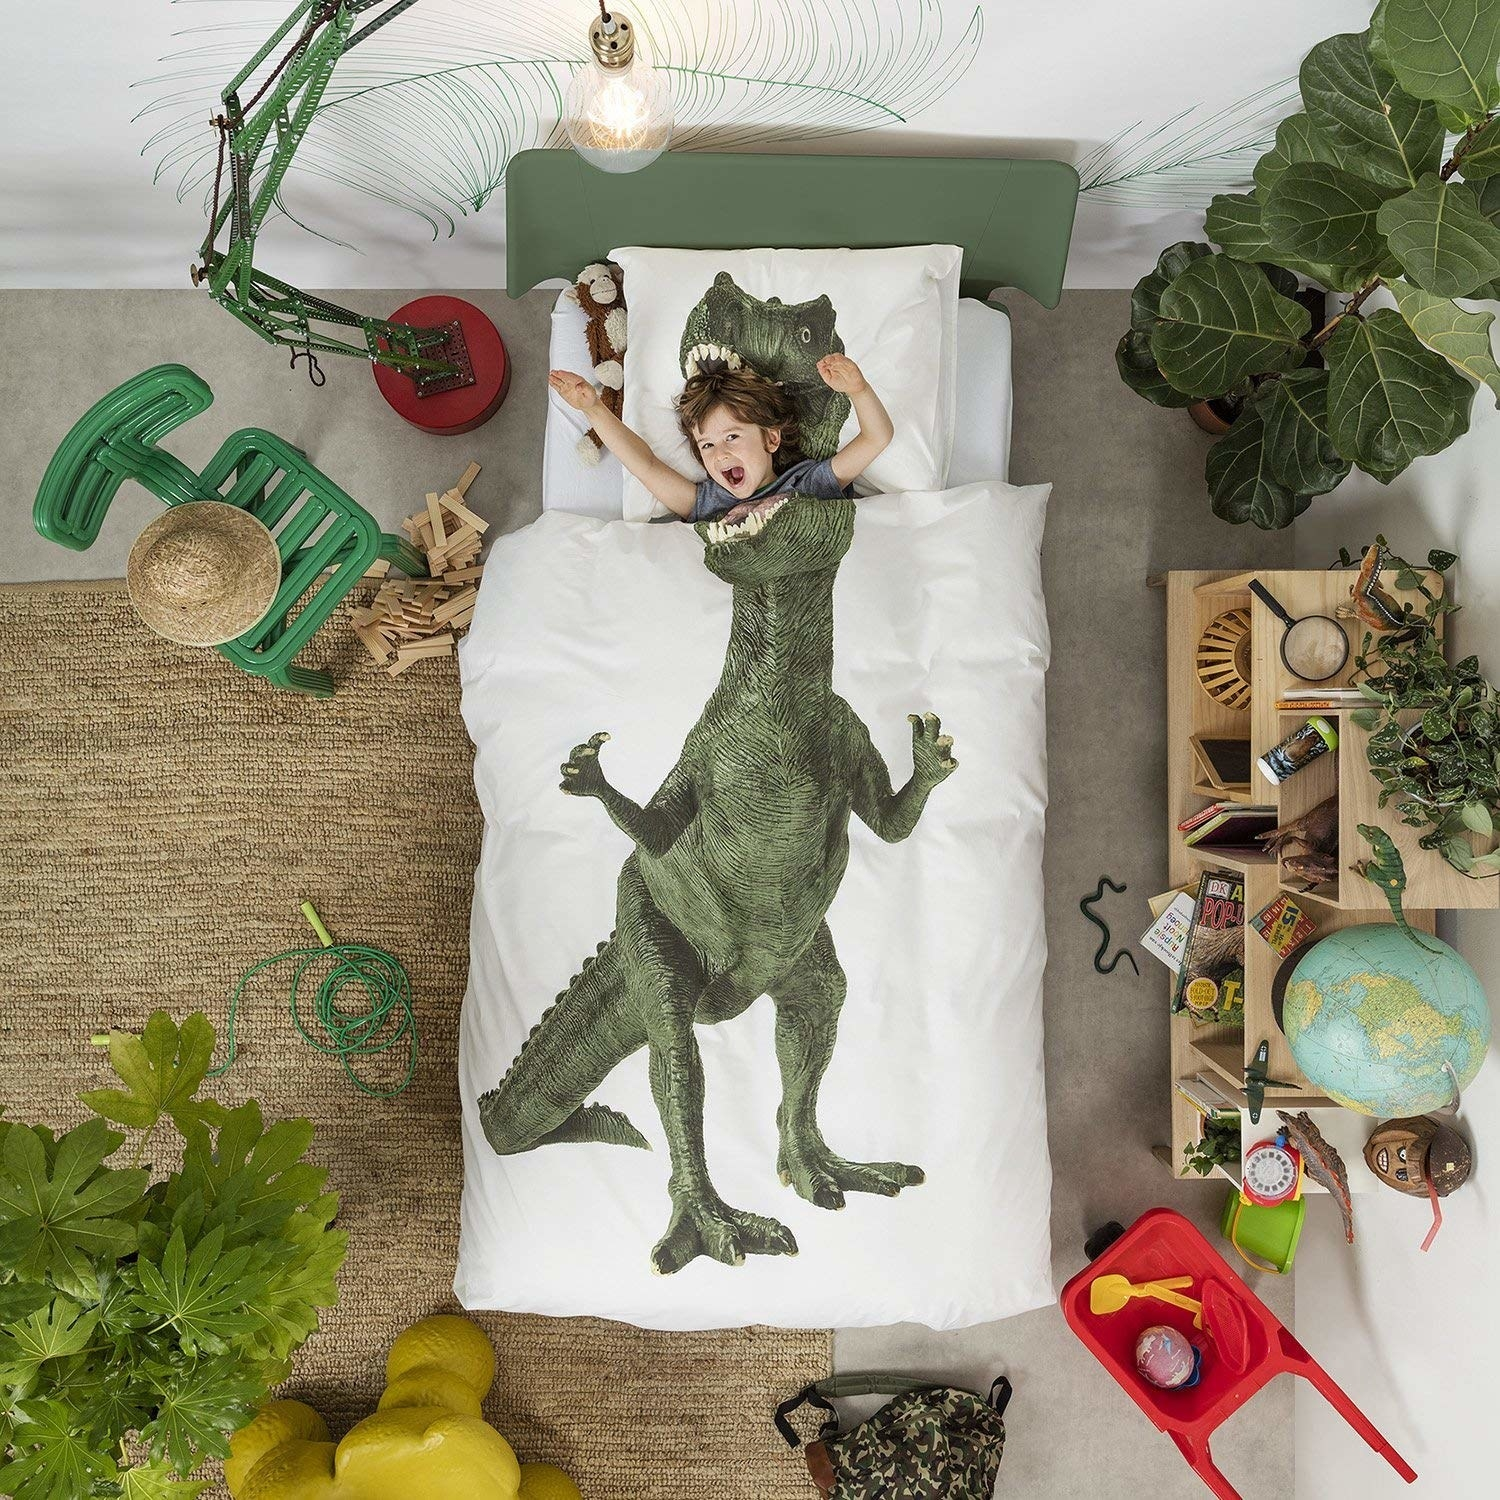 The set with the body of a dinosaur on the duvet and the head on the pillowcase to make it look like it's eating the child under the covers